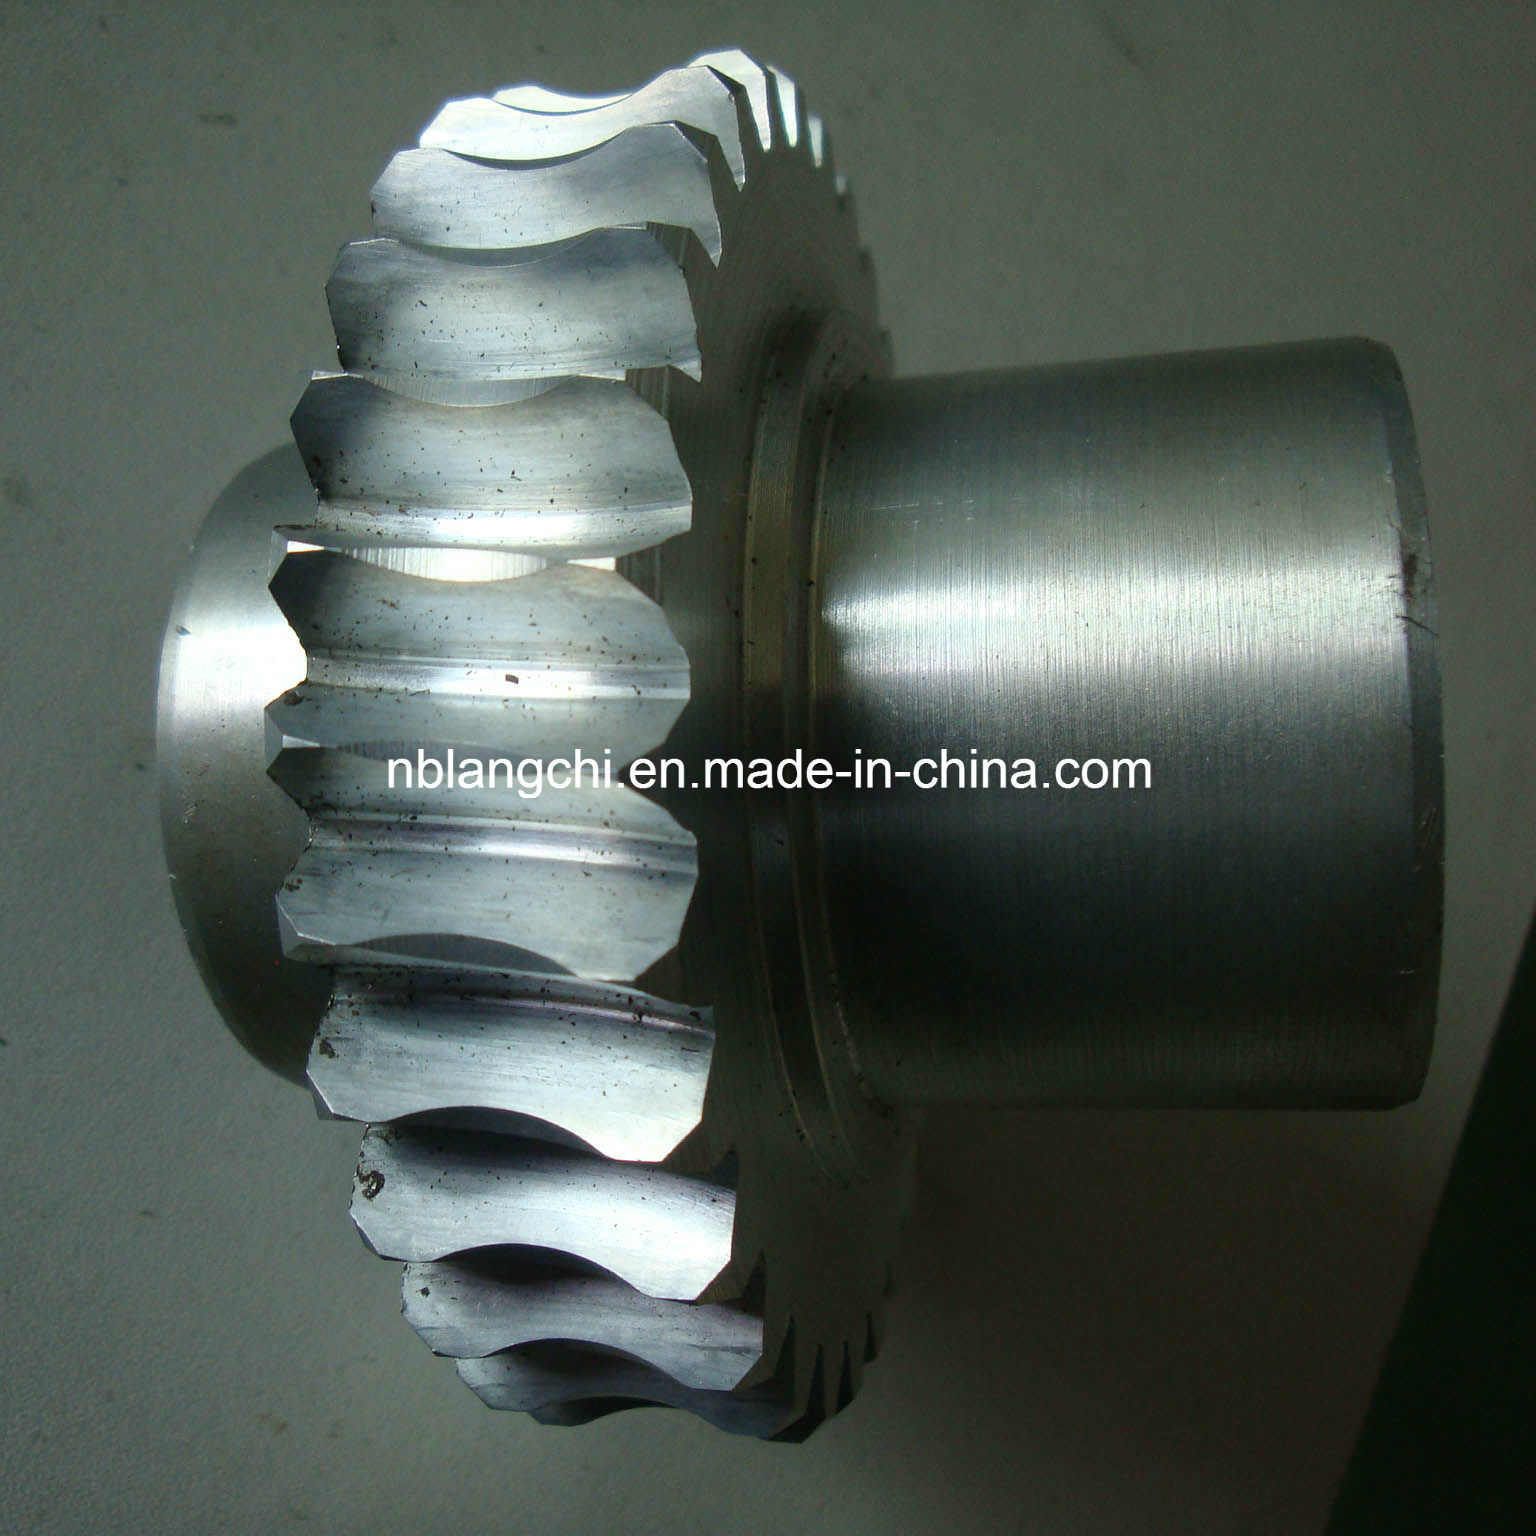 Customized Trapezoidal Zinc Alloy Curved Worm Wheel Gear Nuts Tr40X7